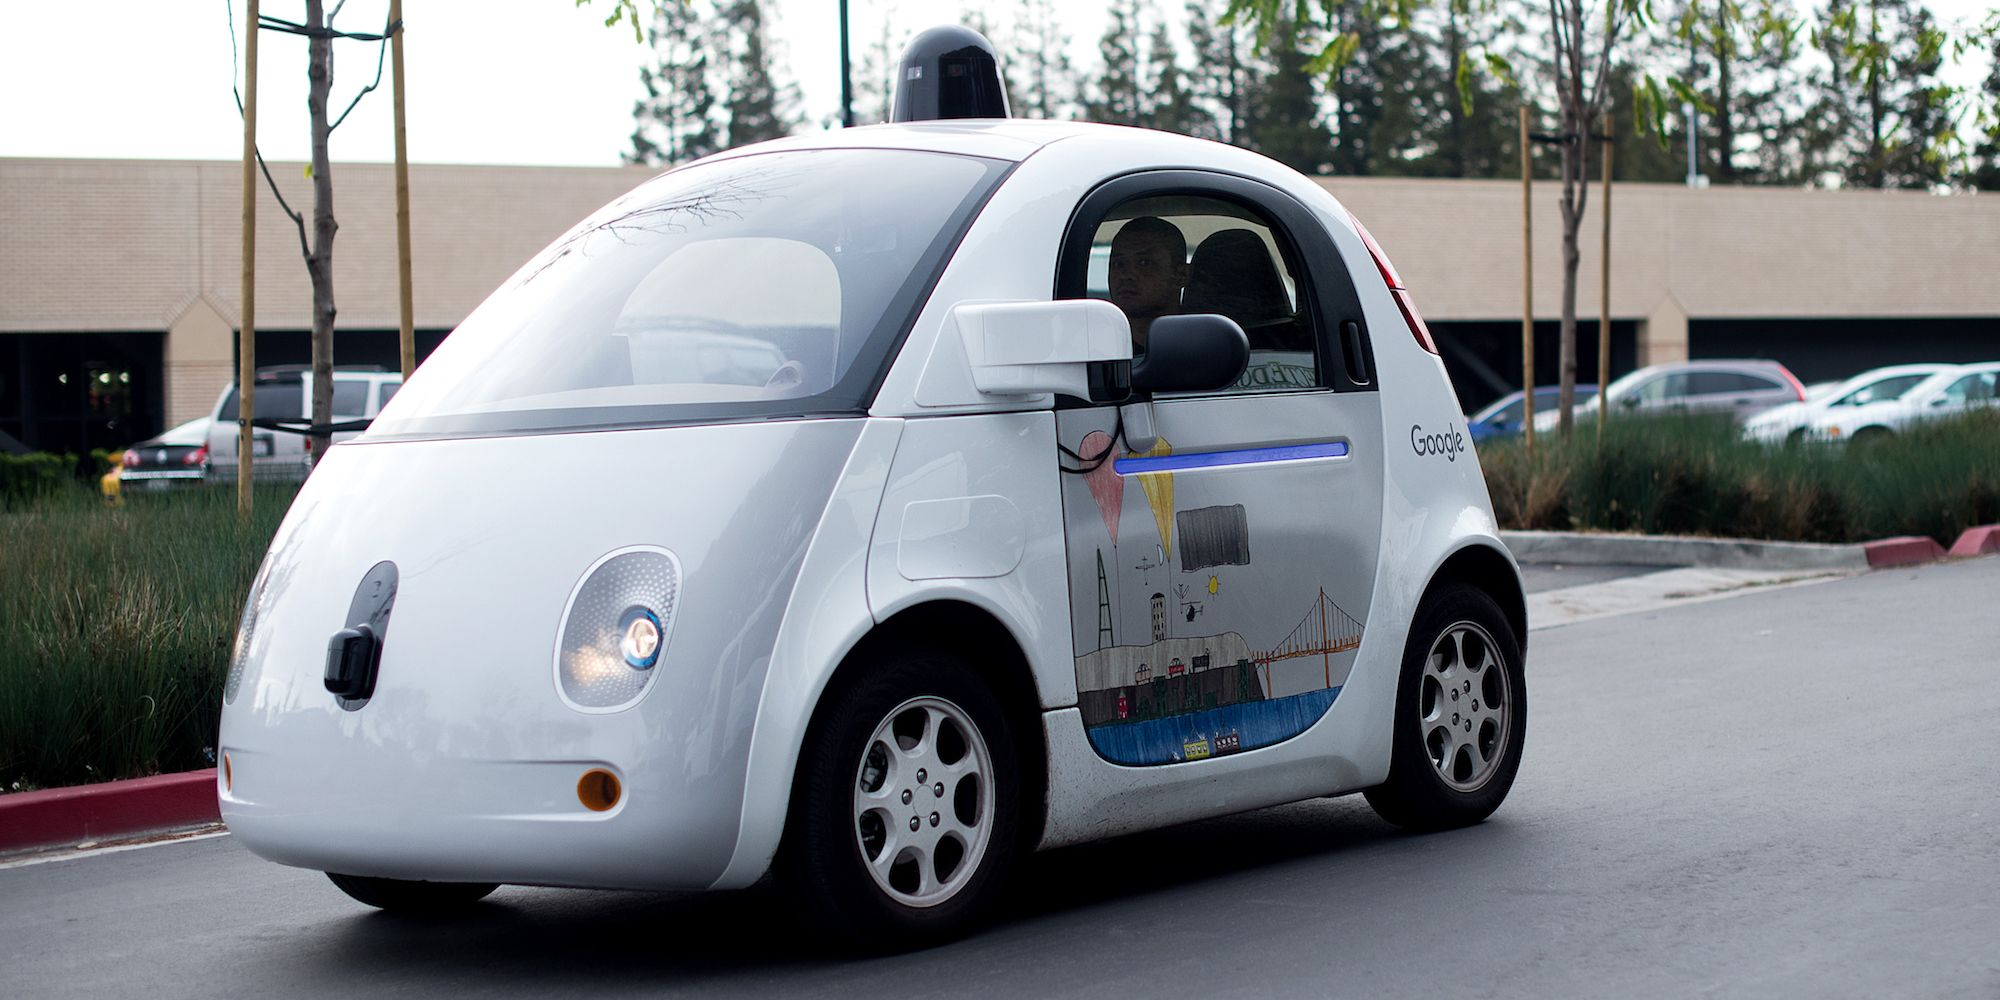 Google Car Gets Windshield Wipers, Just Not for the Windshield